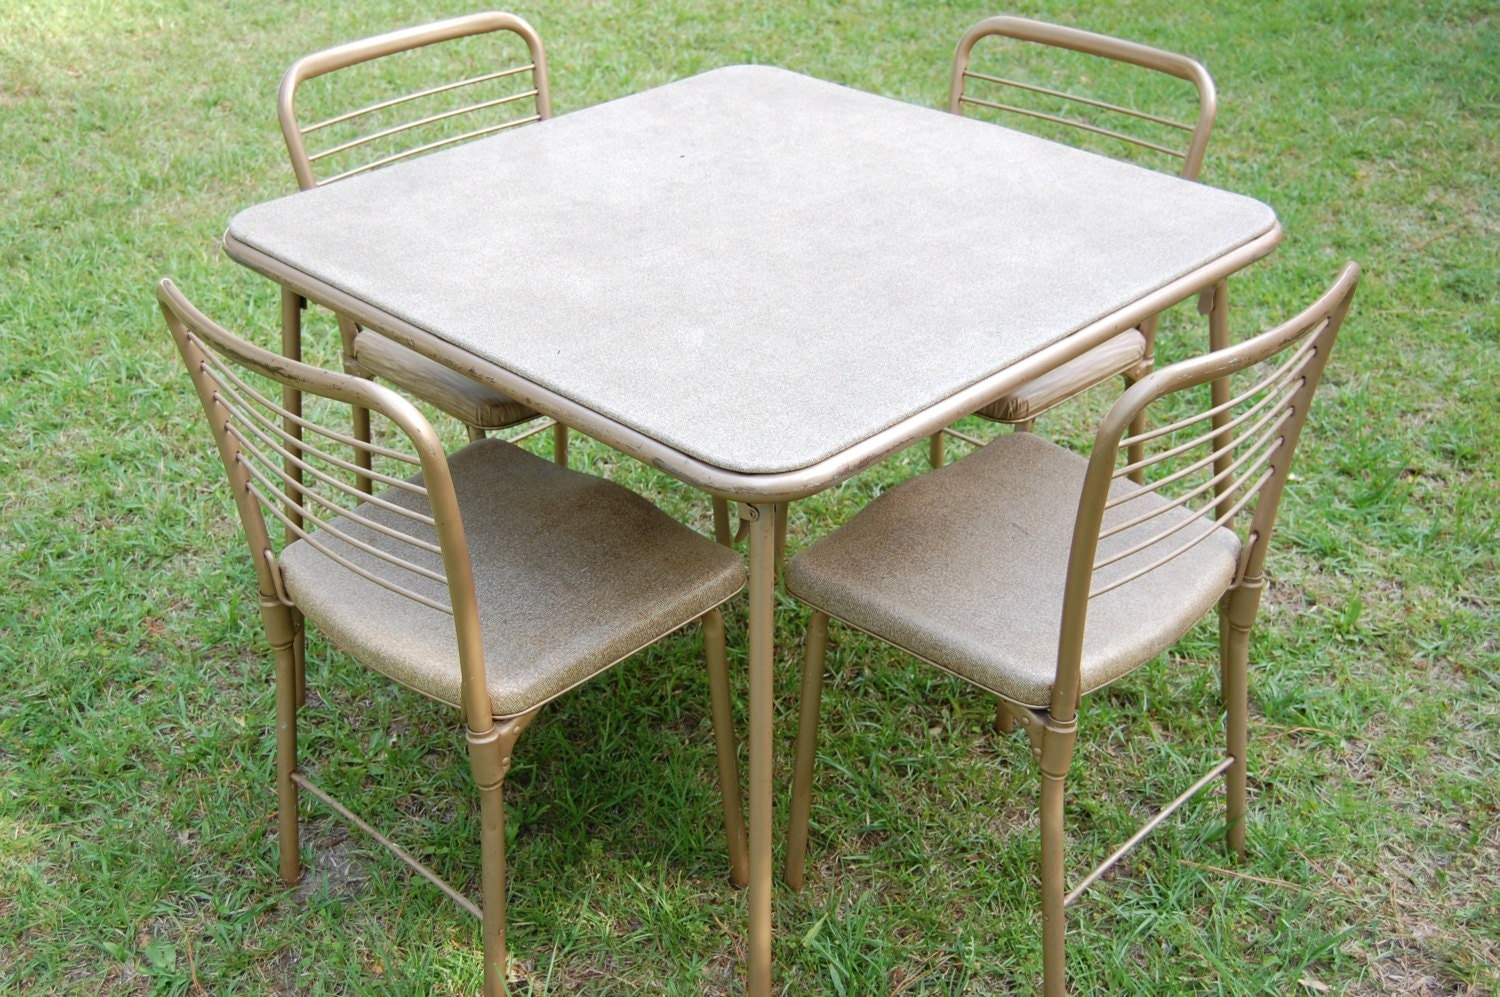 Vintage Cosco 1950s Metal Table And Chairs By PickersWarehouse